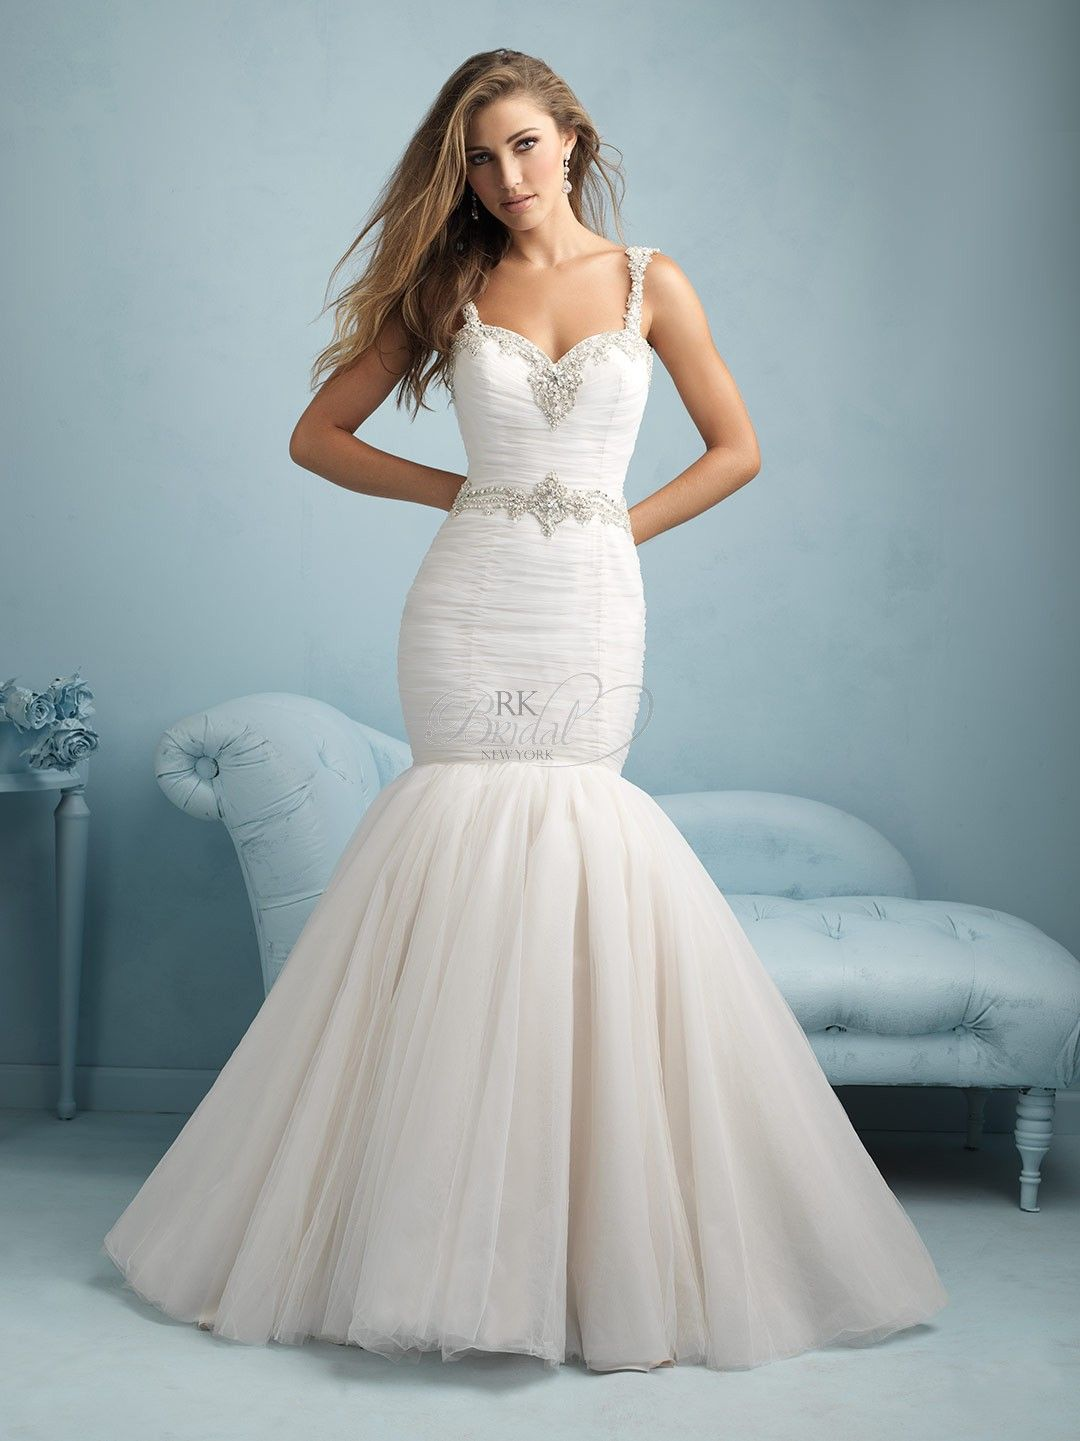 Allure Bridal Spring 2015 - Style 9214   Here Comes The Bride&Bling ...